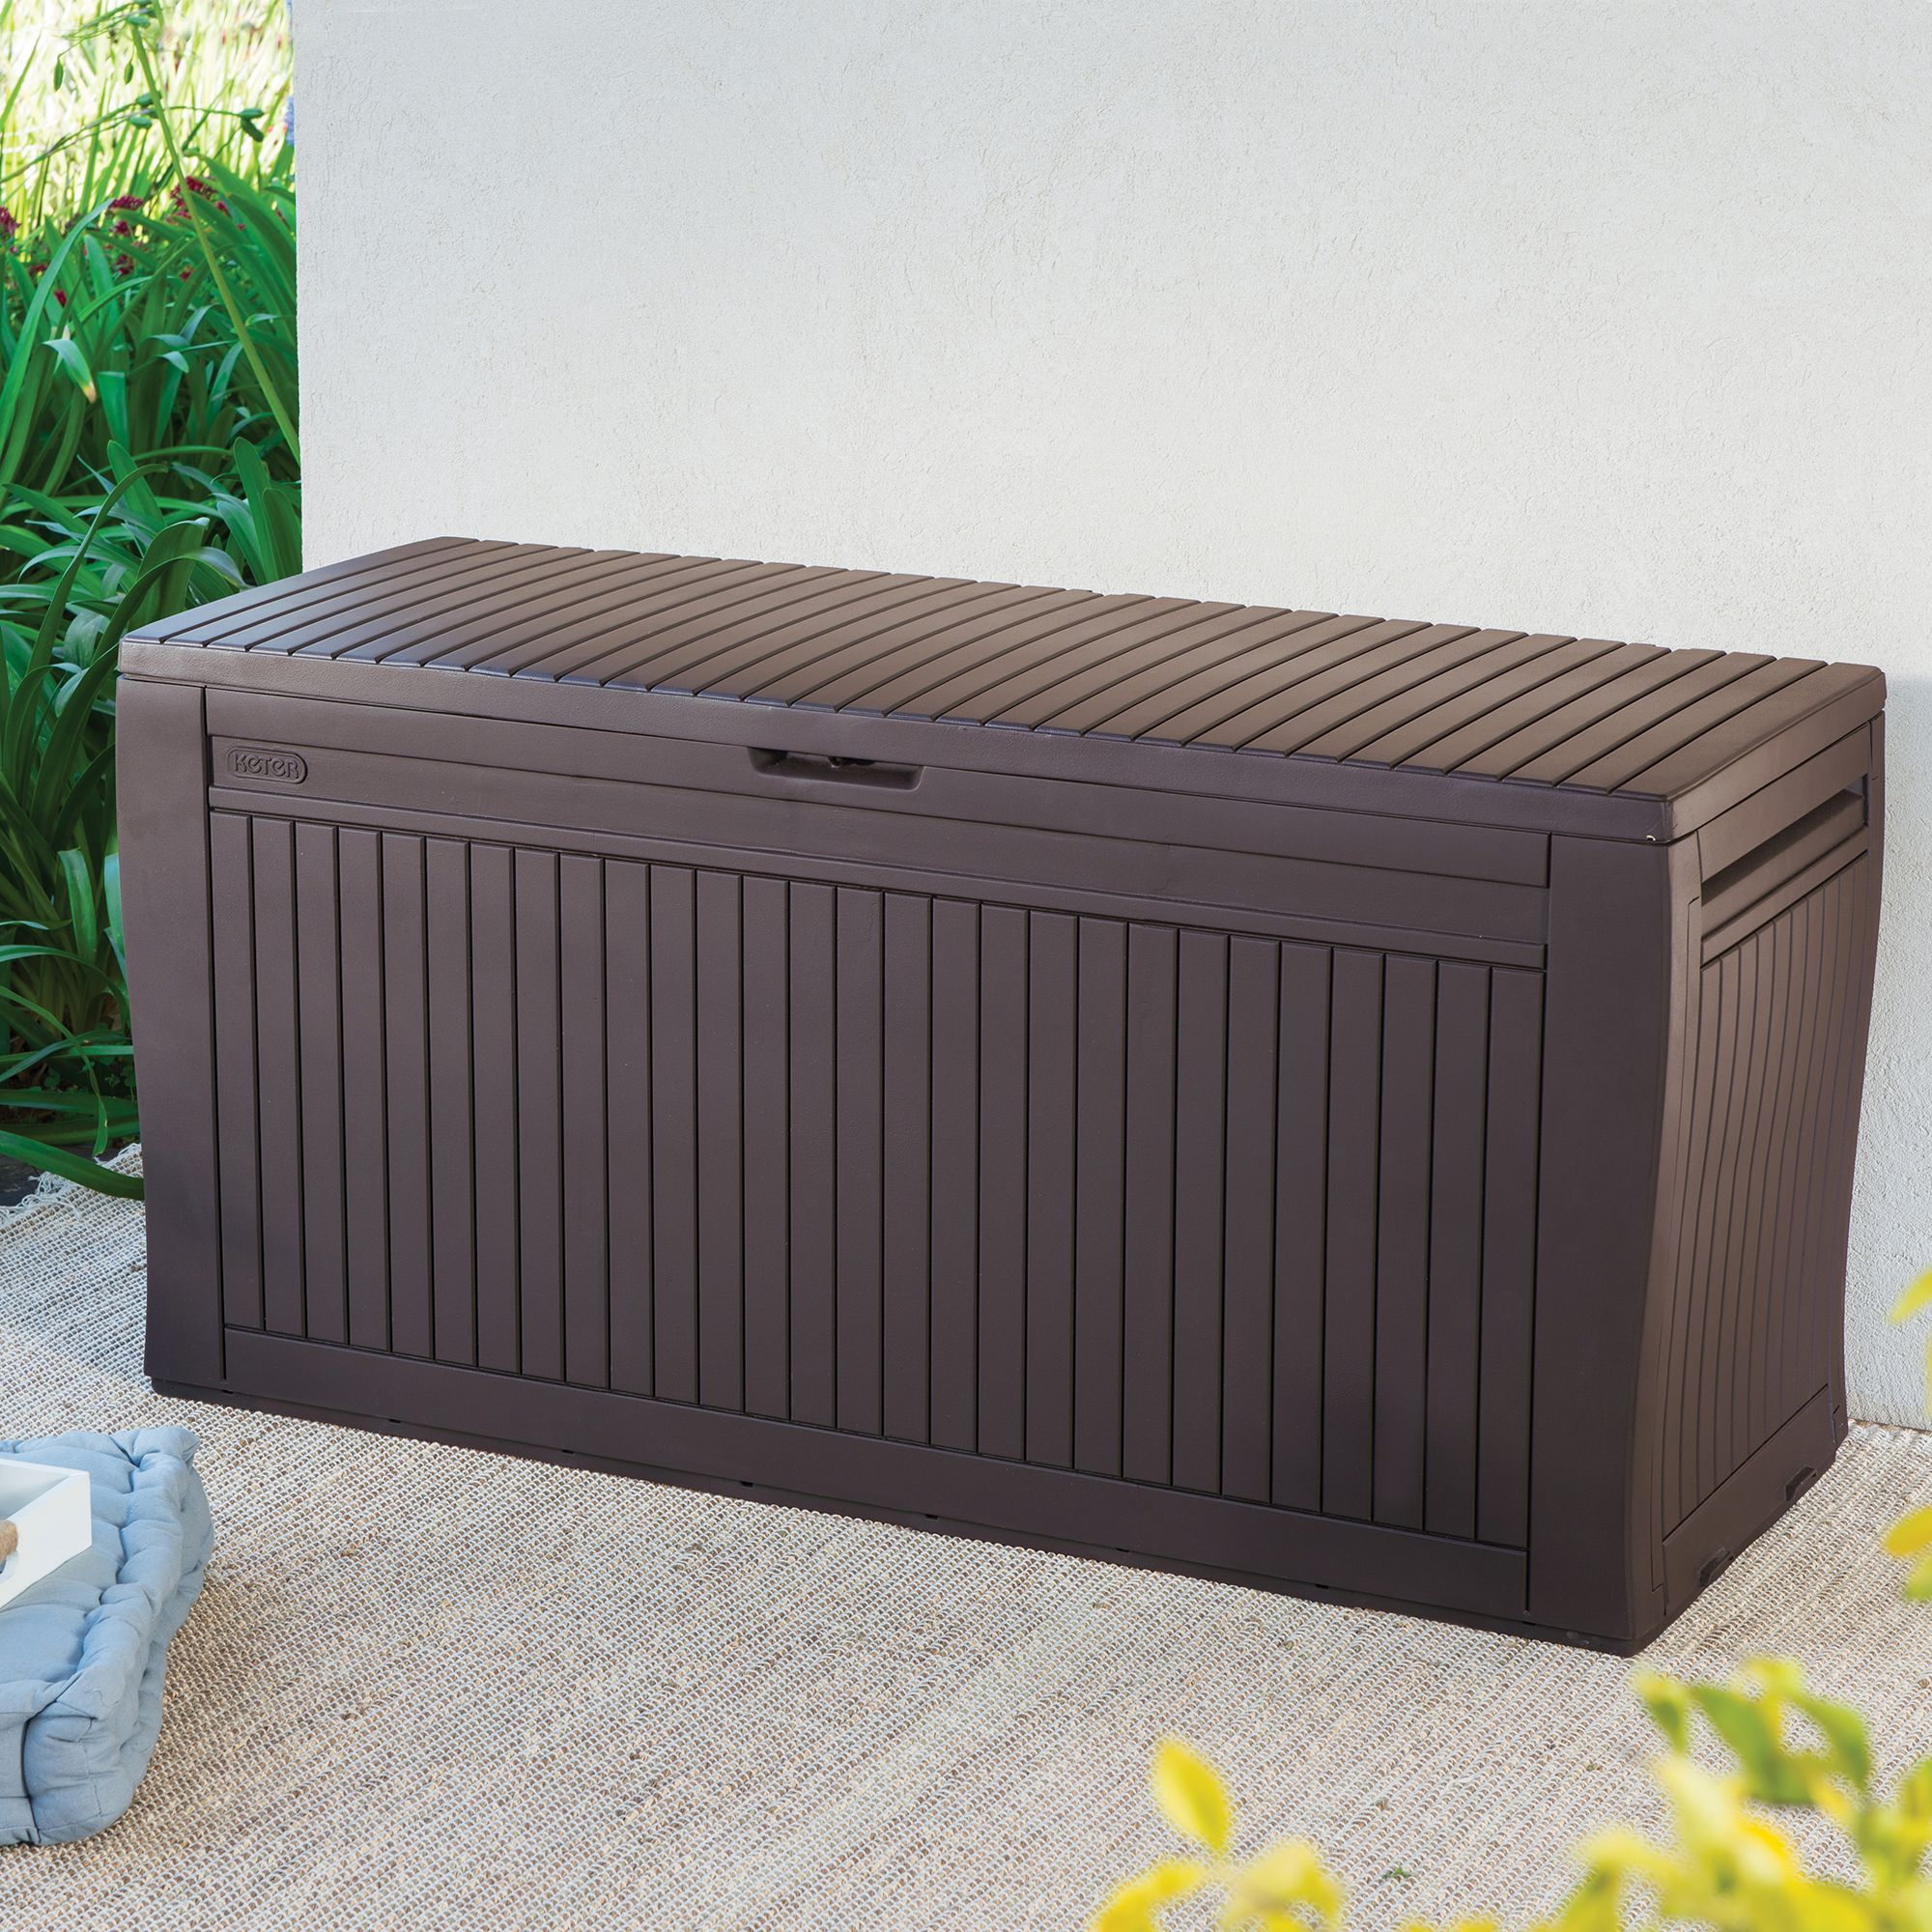 Comfy Wood Effect Plastic Garden Storage Box Departments